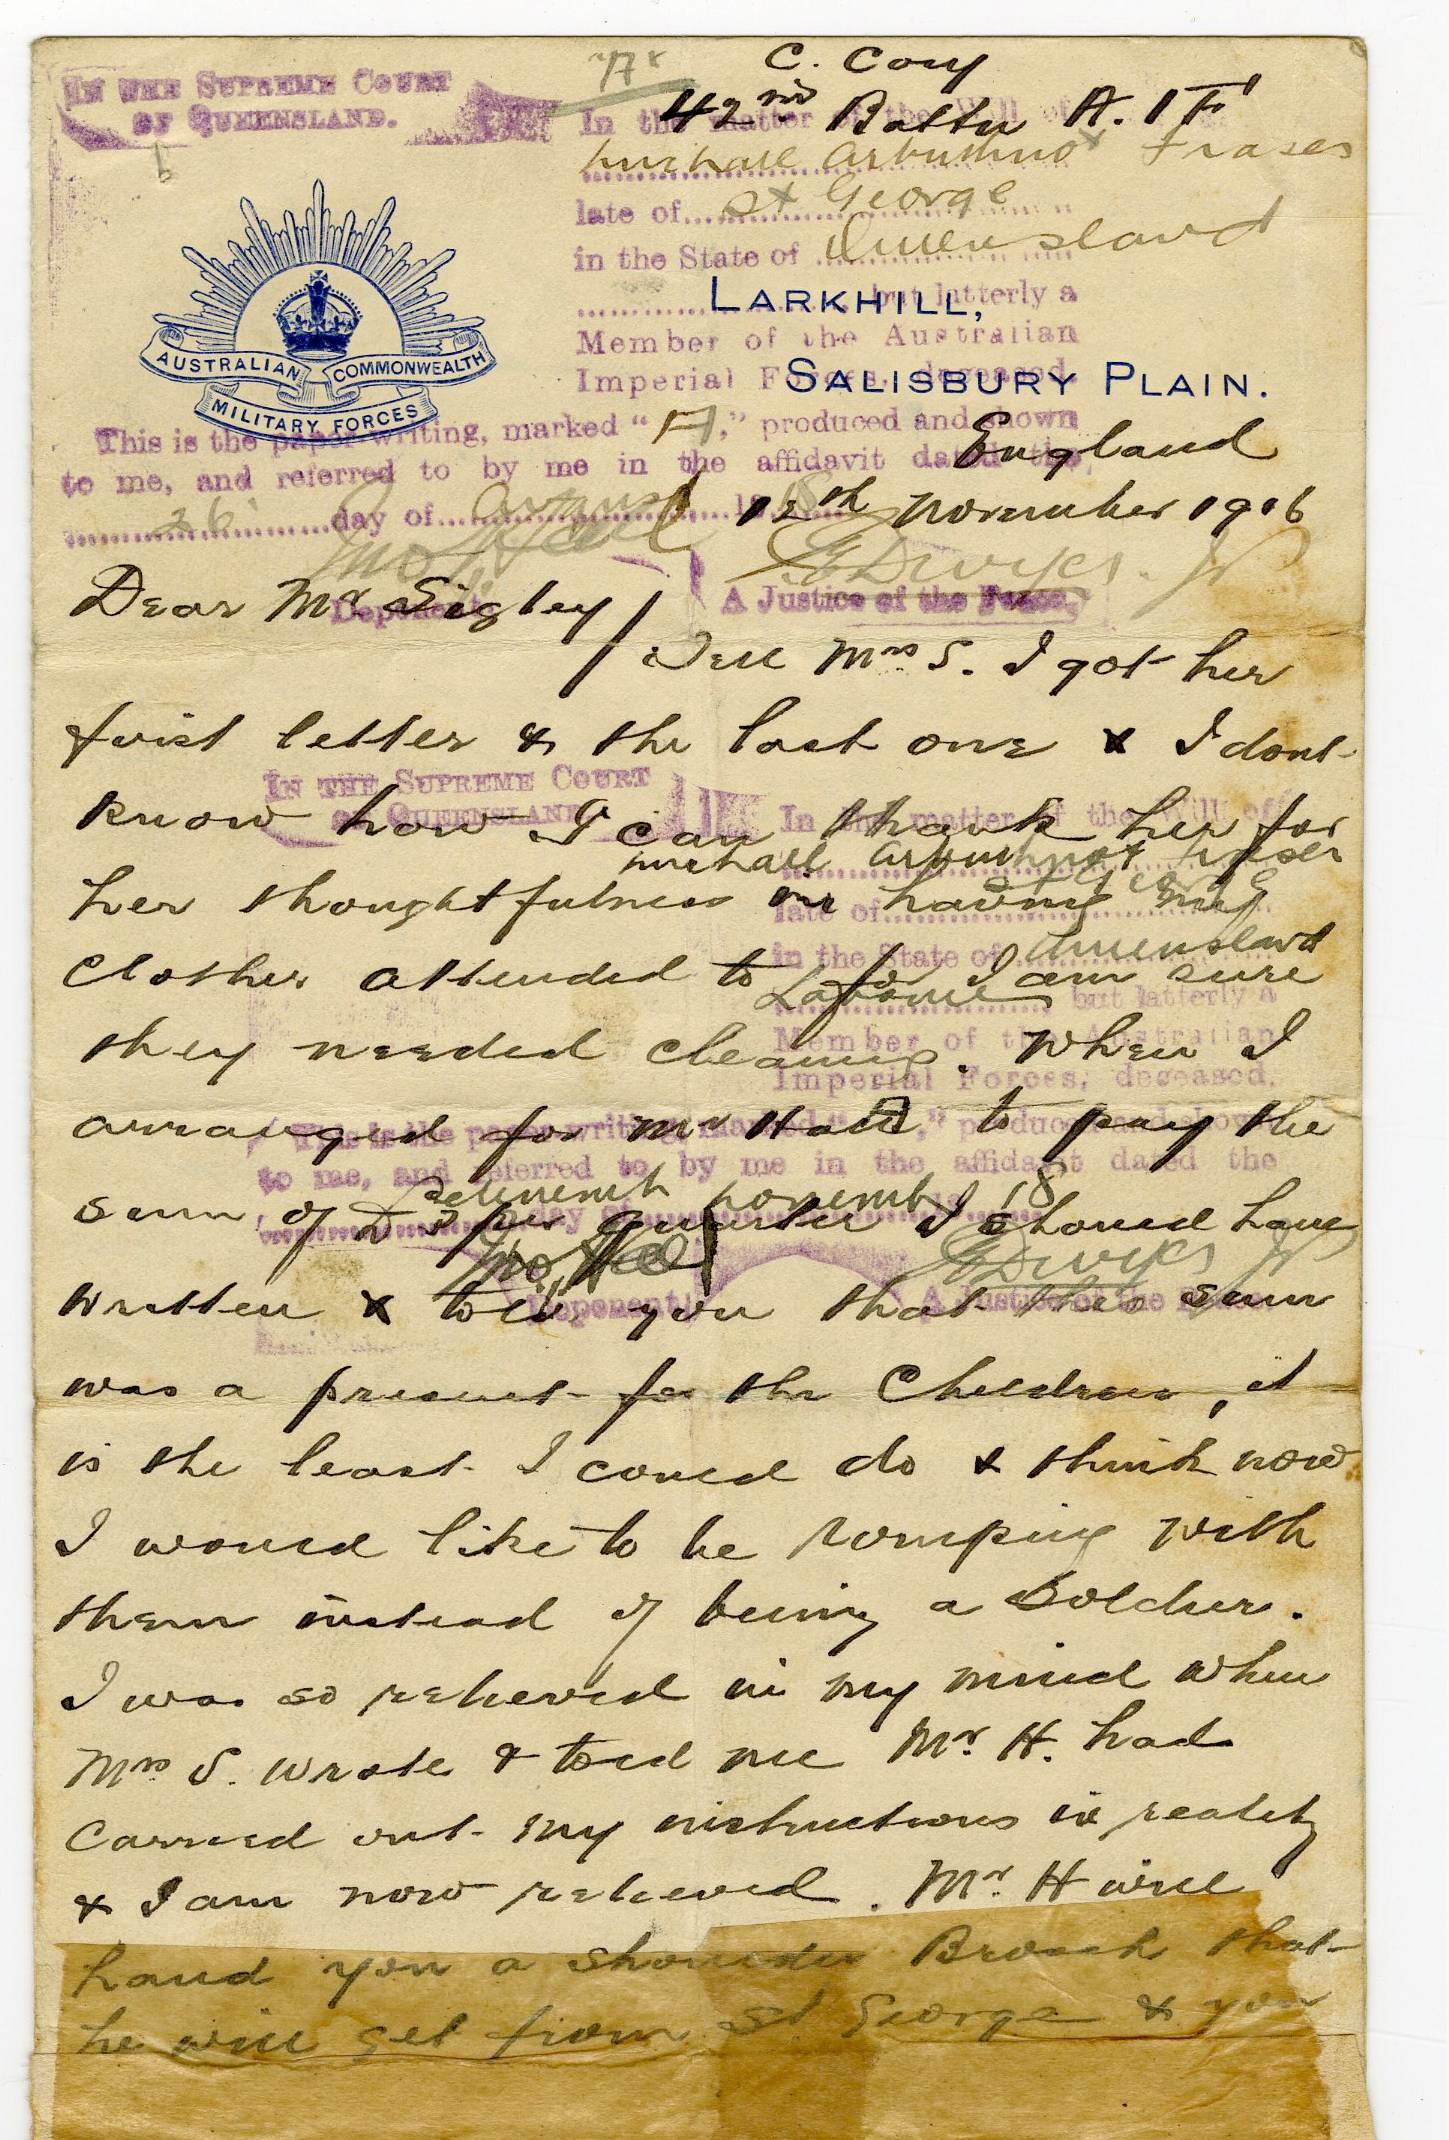 IID-823399-Partial-Supreme-Court-Brisbane-Orders-and-Elections-No-1553-18-1918-IM0015.jpg